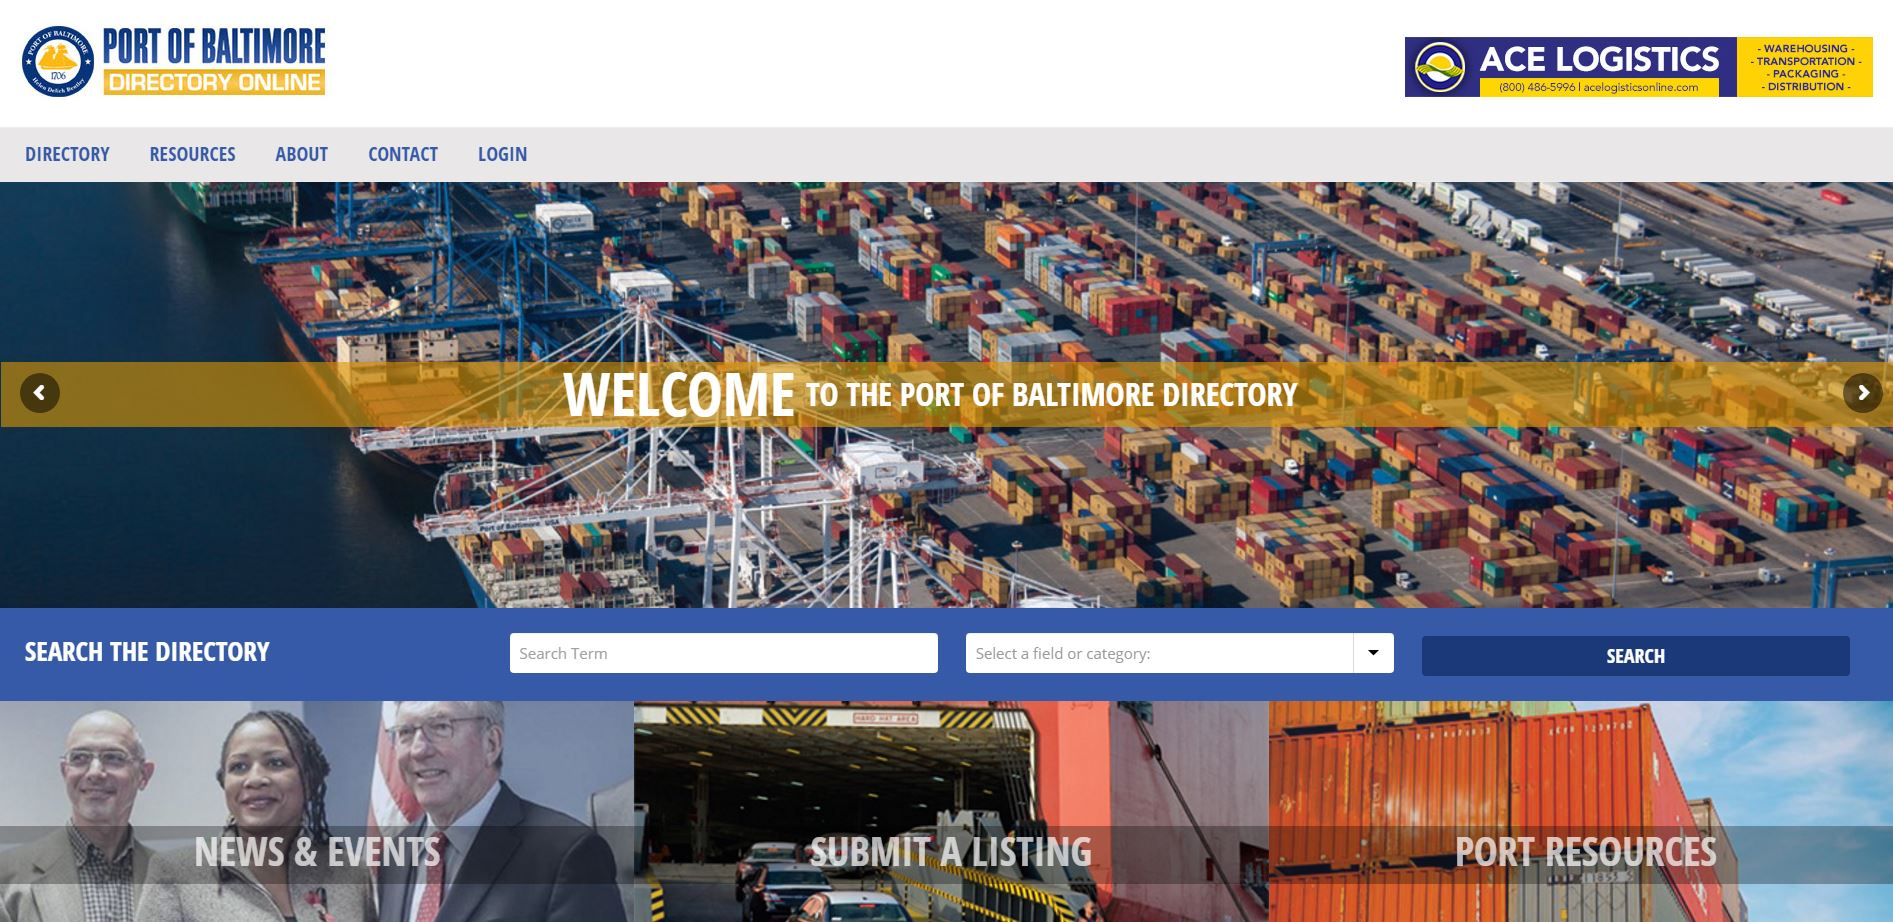 Port of Baltimore Directory Online: Web Development